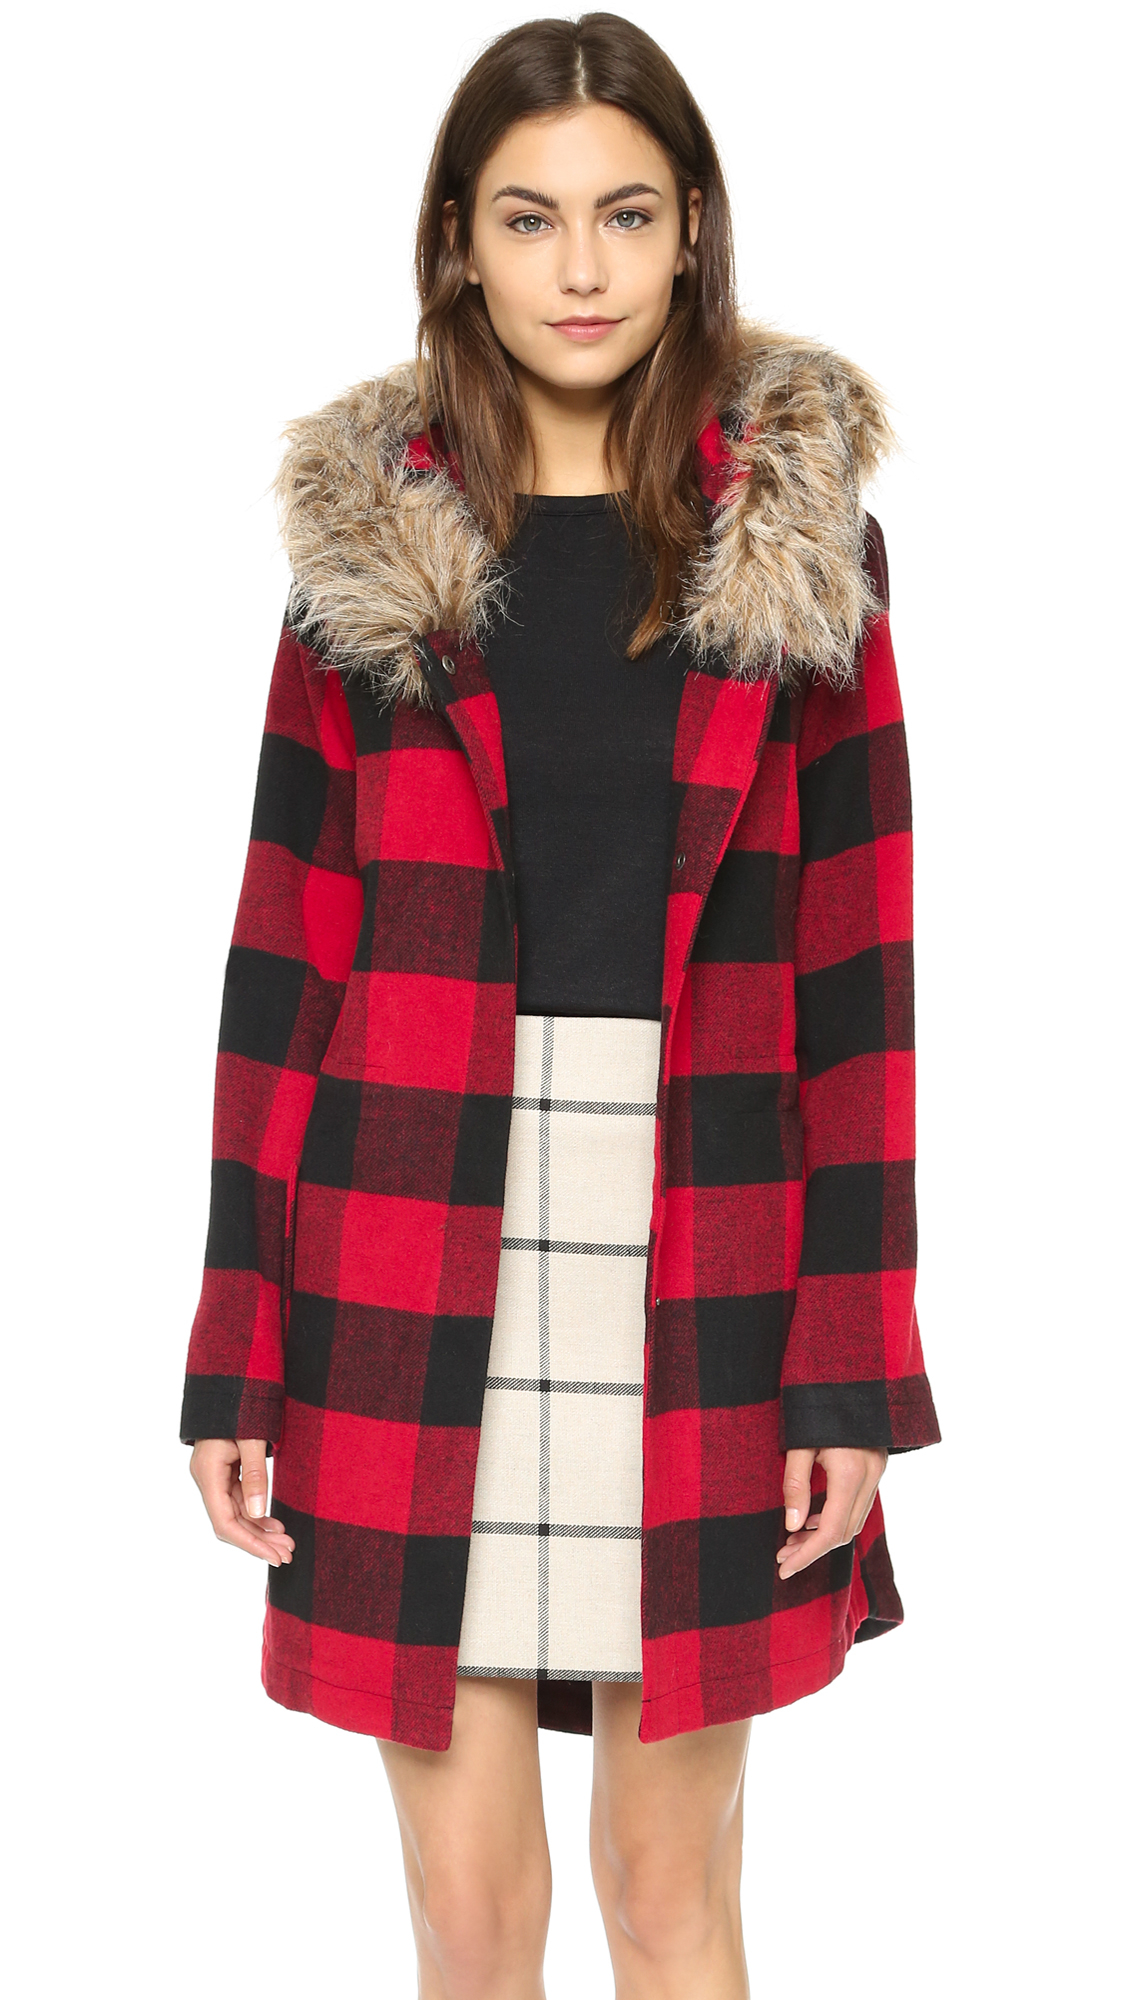 Fleece-Mountain Red Buffalo Plaid- Toddler Boys Zing III Fleece Jacket At The Buzzer Polar Fleece Boys Jacket. by At The Buzzer. $ $ 19 99 Prime. Red Buffalo Check Polar Fleece Jacket with White Sherpa Lining YONYWA Womens Buffalo Plaid Cardigans Long Sleeve Elbow Patch Draped Open Front Cardigan Sweater. by YONYWA.